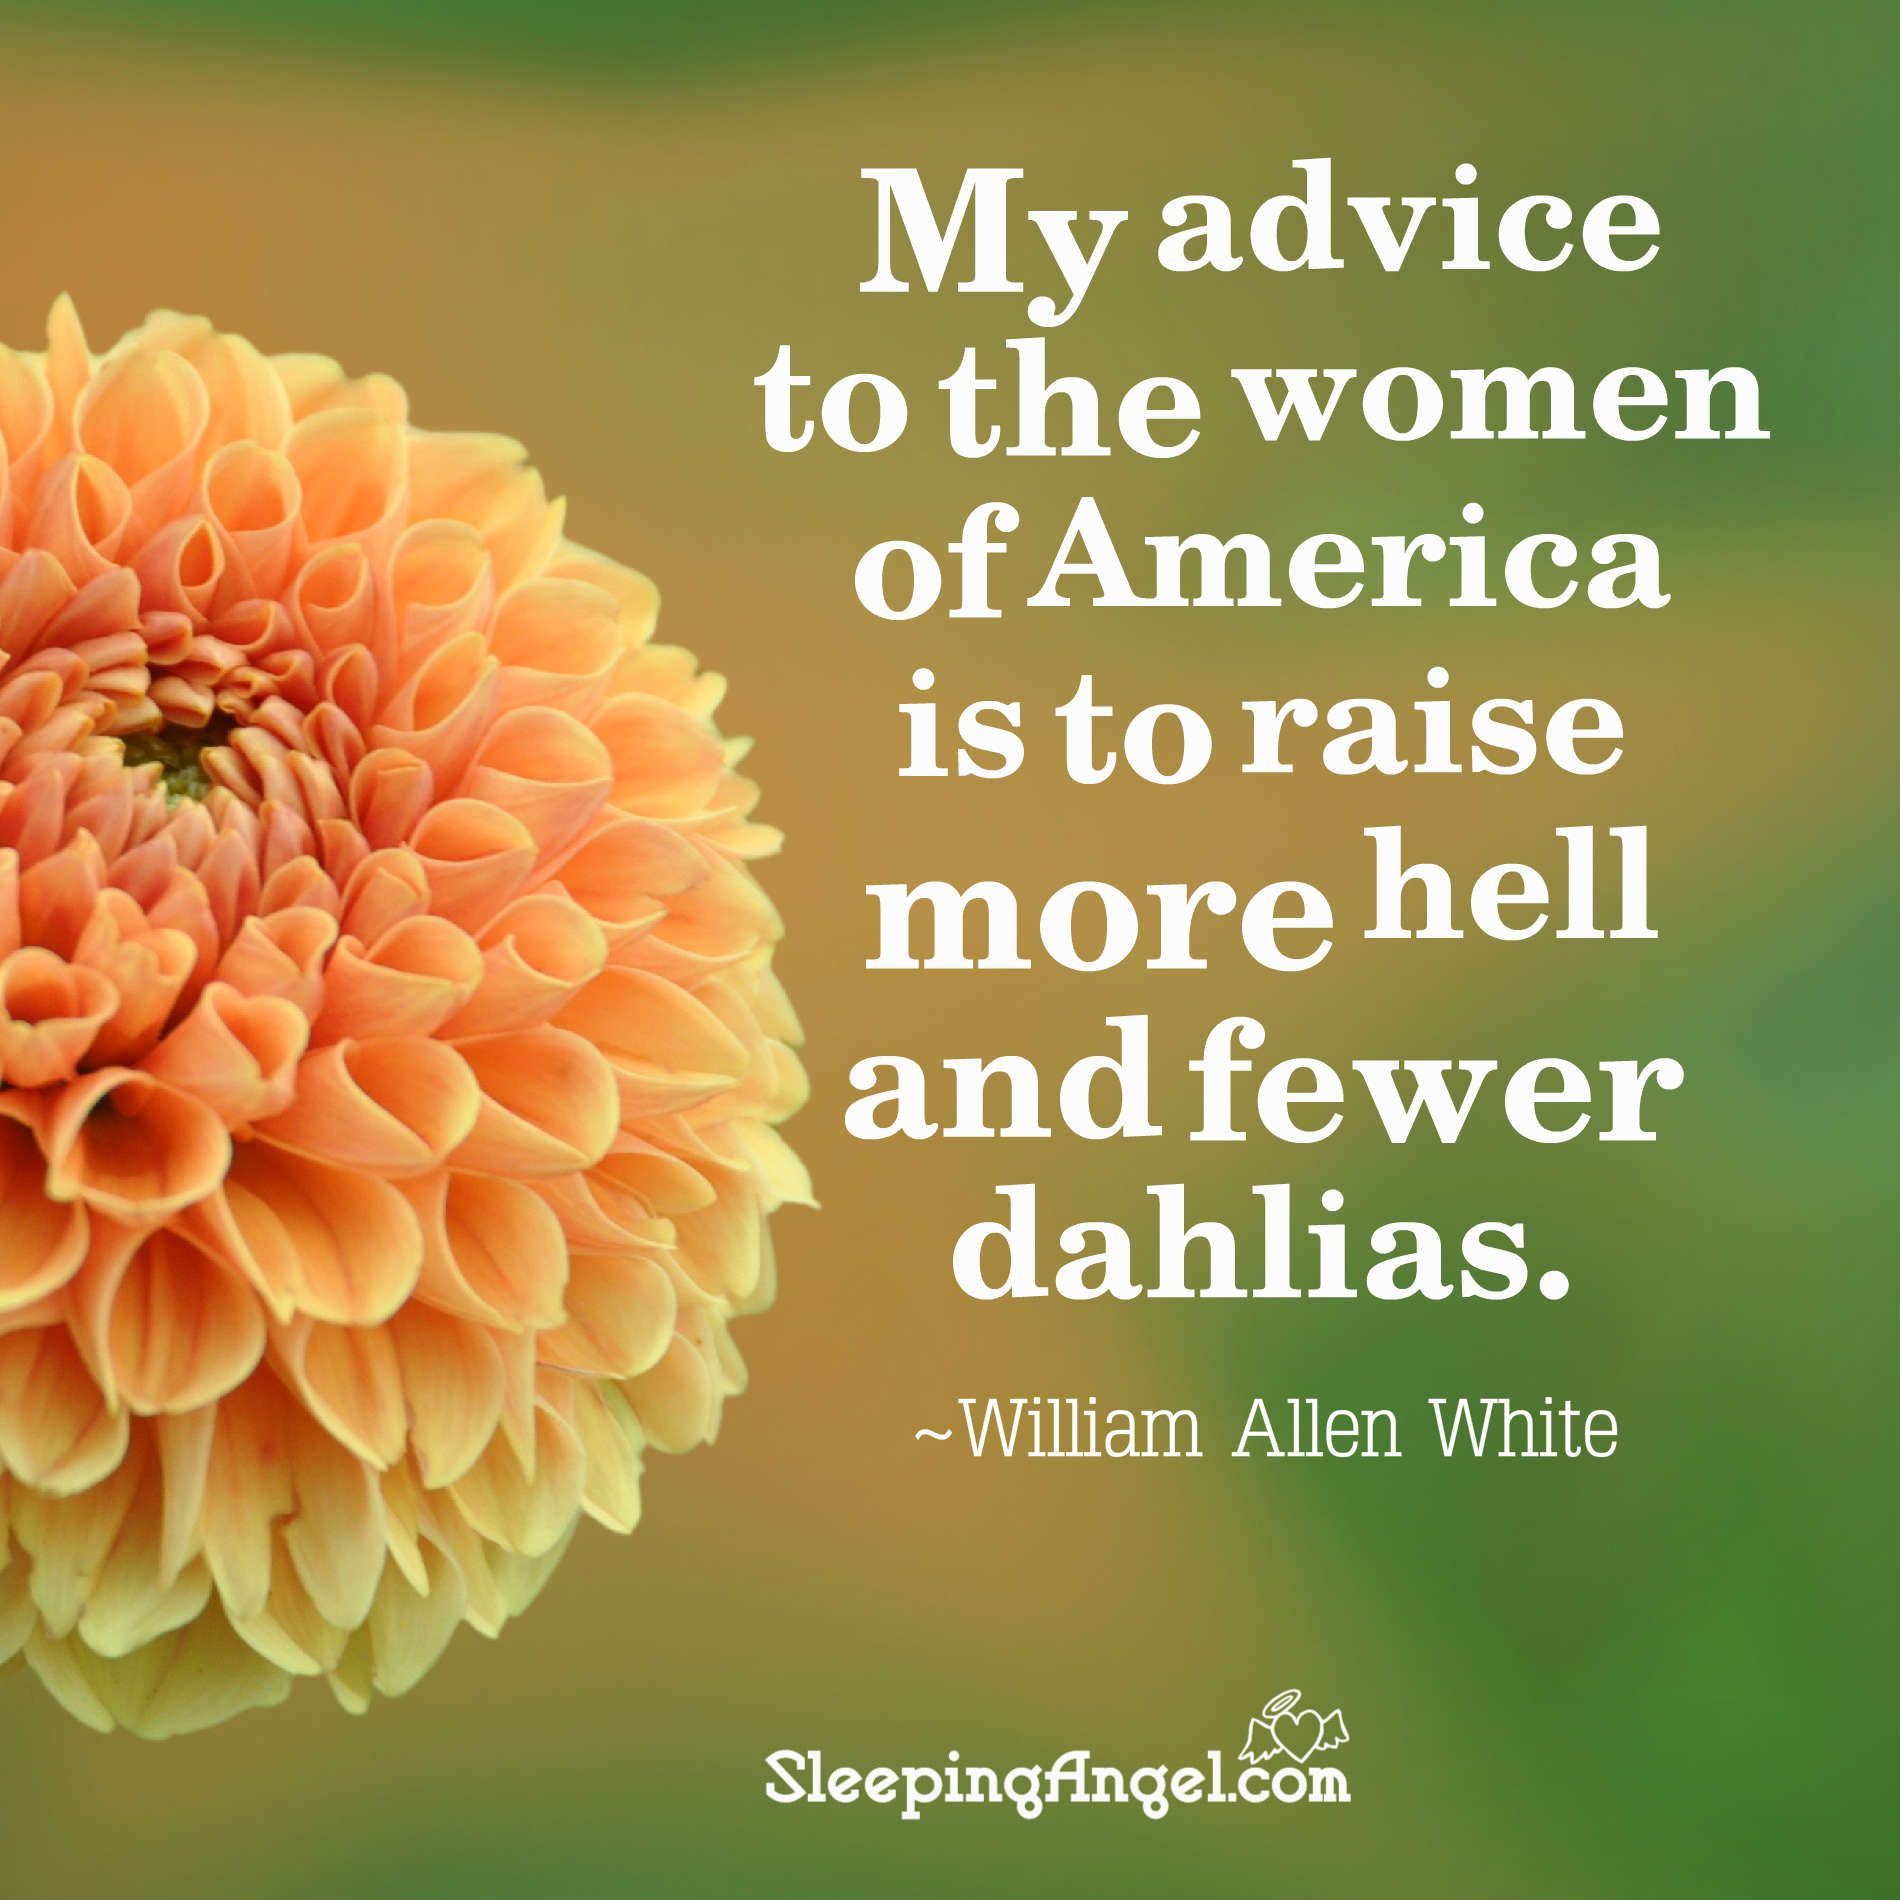 My advice to the women of america is to raise more hell and fewer my advice to the women of america is to raise more hell and fewer dahlias william allen white httpblogeepingangelp2019 izmirmasajfo